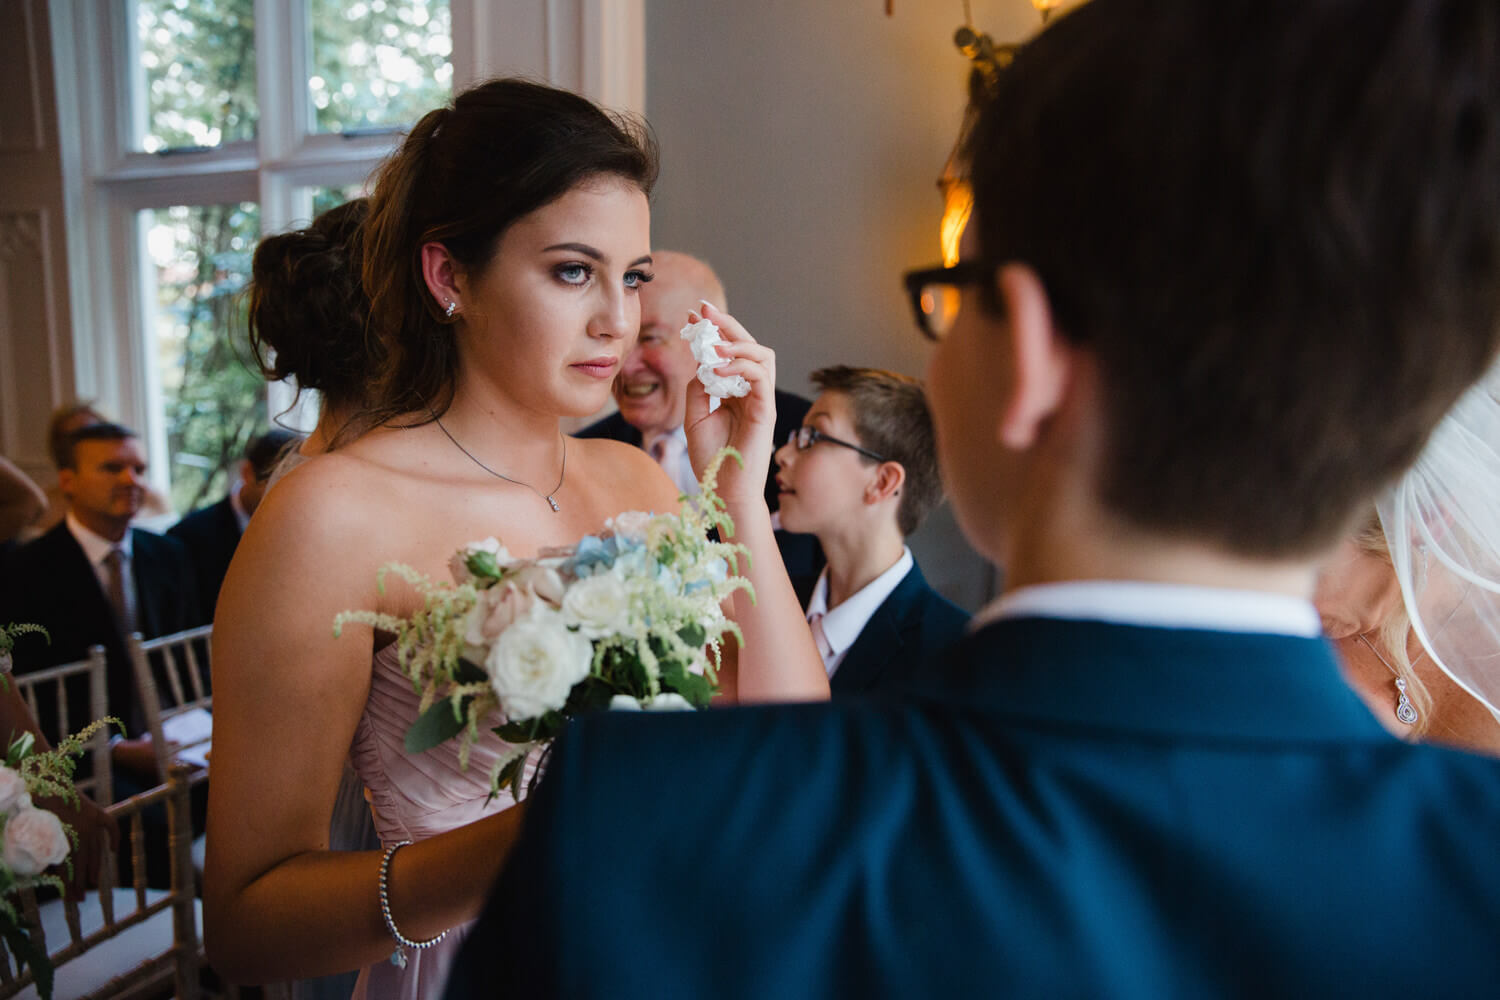 bridesmaid wipes away tear with tissue